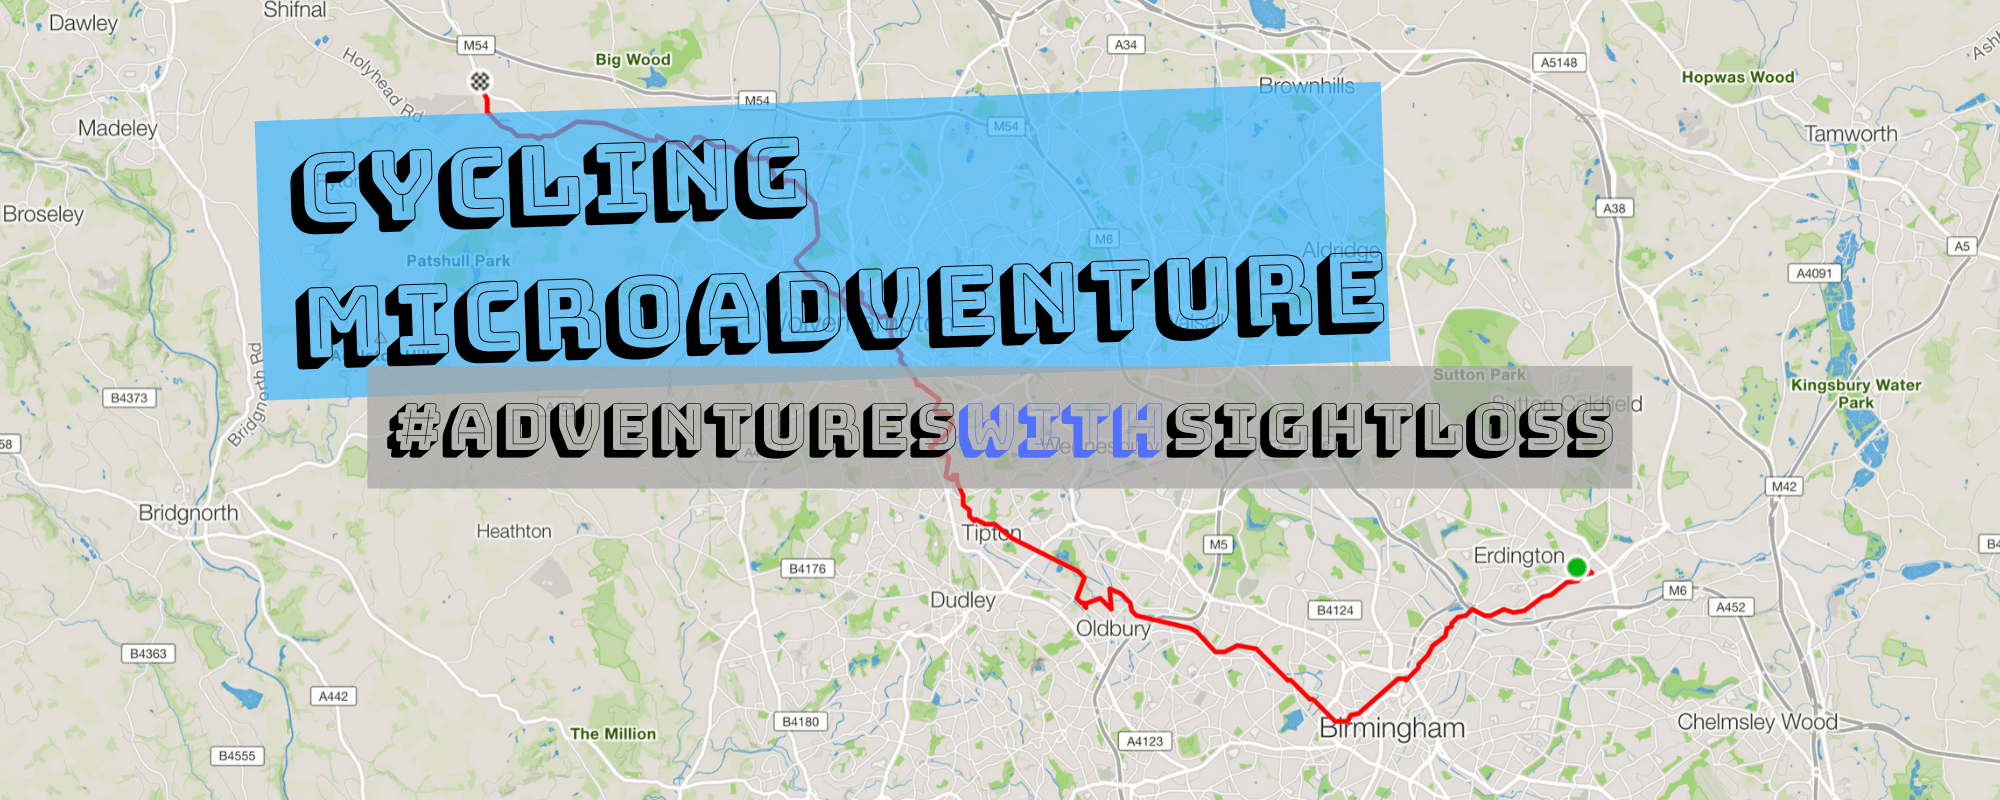 ycling Microadventure - adventures with sightloss